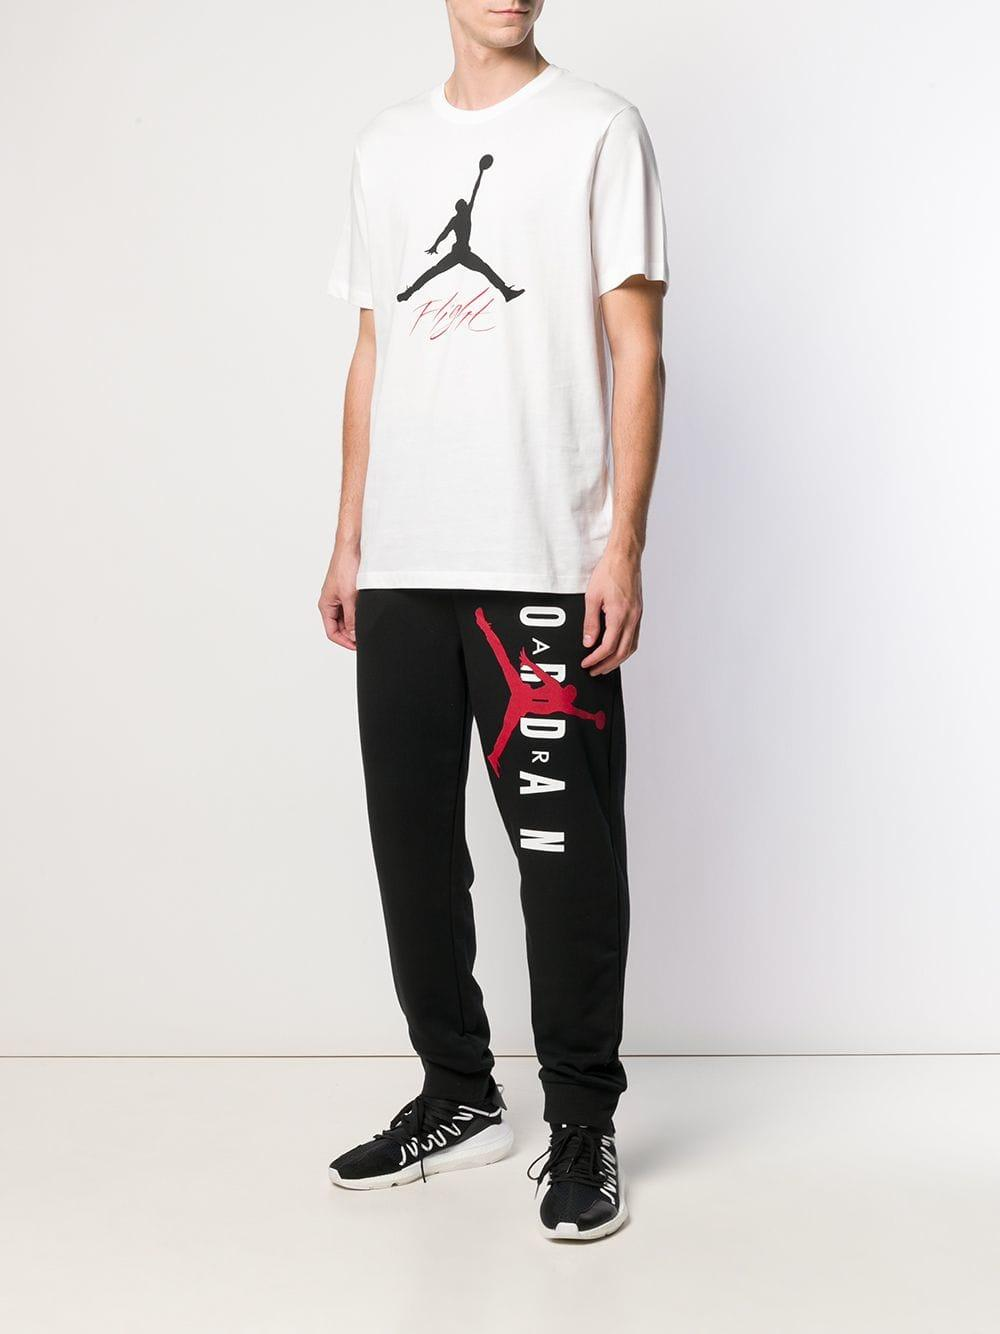 ed58e0fed2ec9d Nike Jordan Jump Man T-shirt in White for Men - Lyst